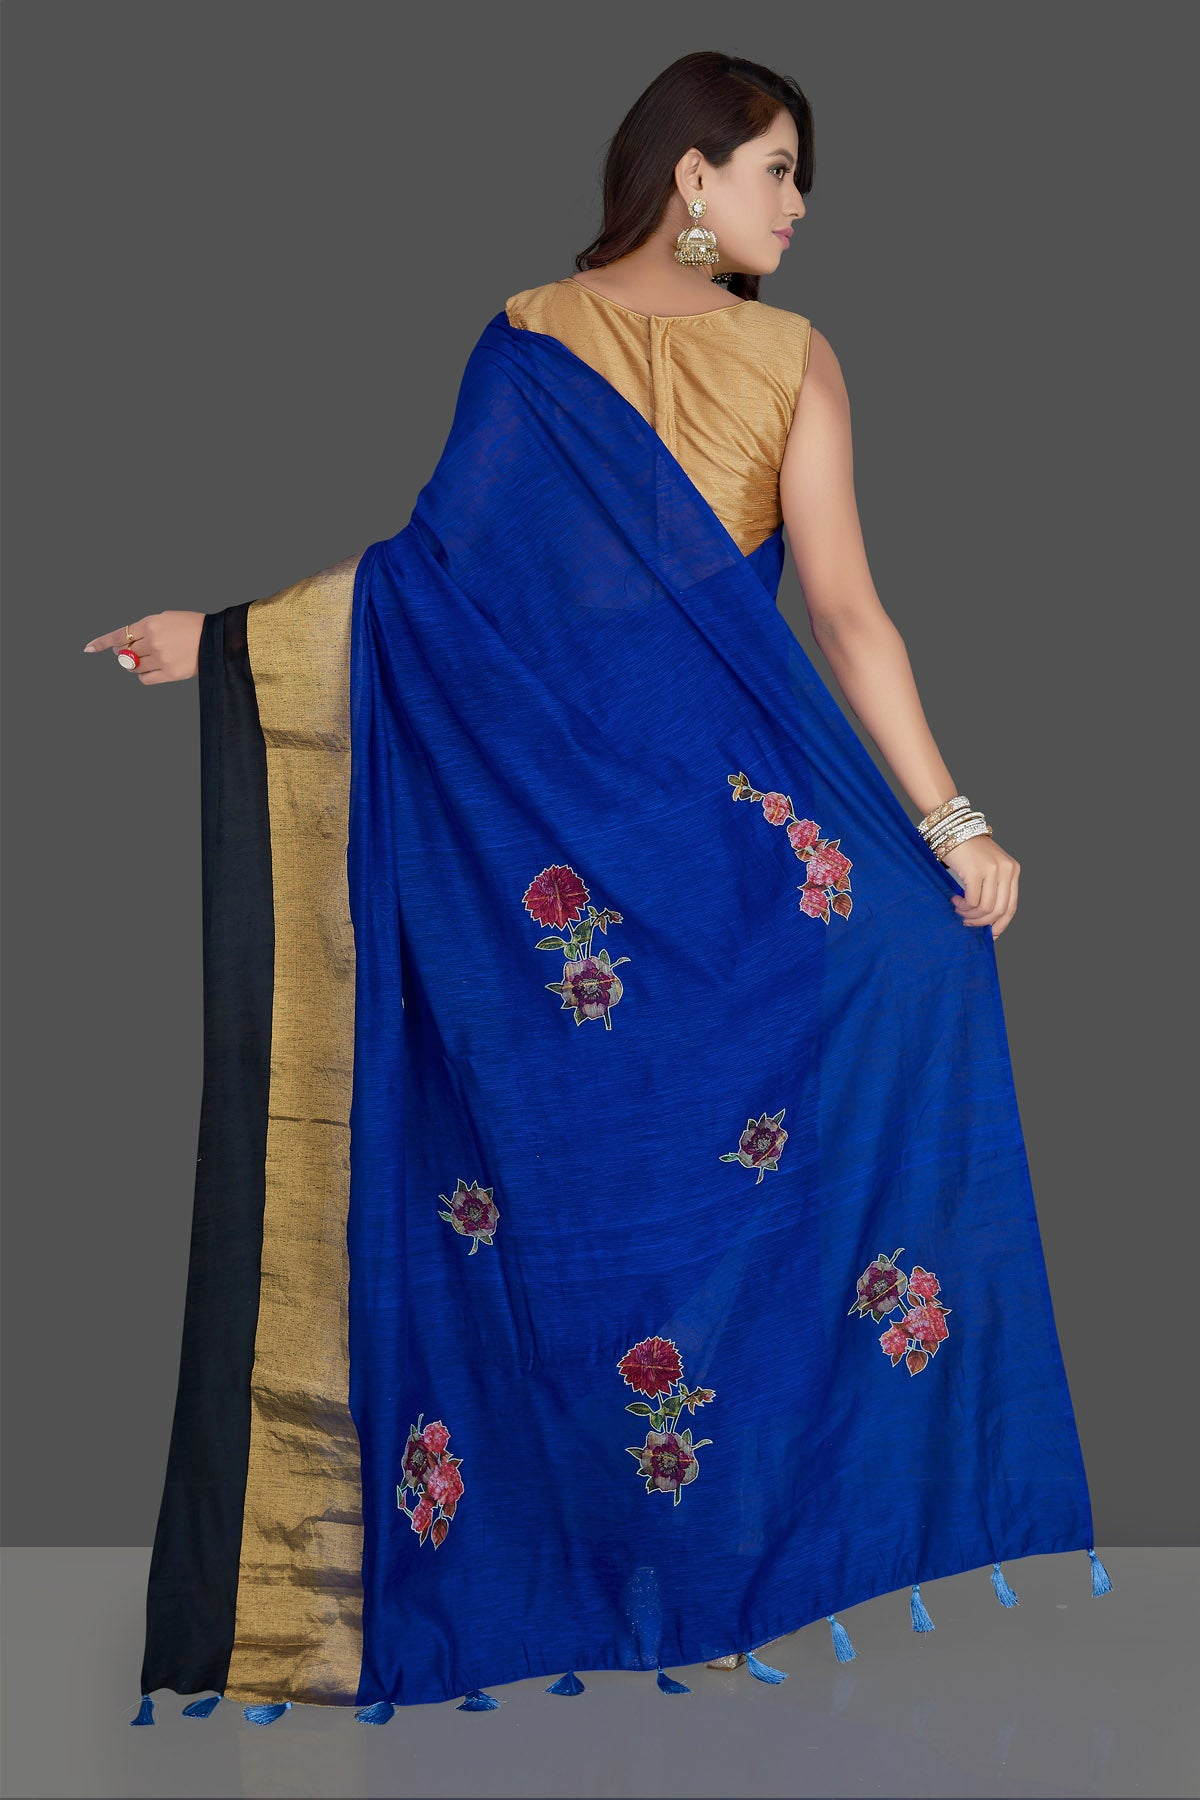 Buy beautiful indigo blue floral applique linen saree online in USA with floral saree blouse. Radiate elegance with designer sarees with blouse, linen sarees from Pure Elegance Indian fashion boutique in USA. We bring a especially curated collection of ethnic saris for Indian women in USA under one roof!-back